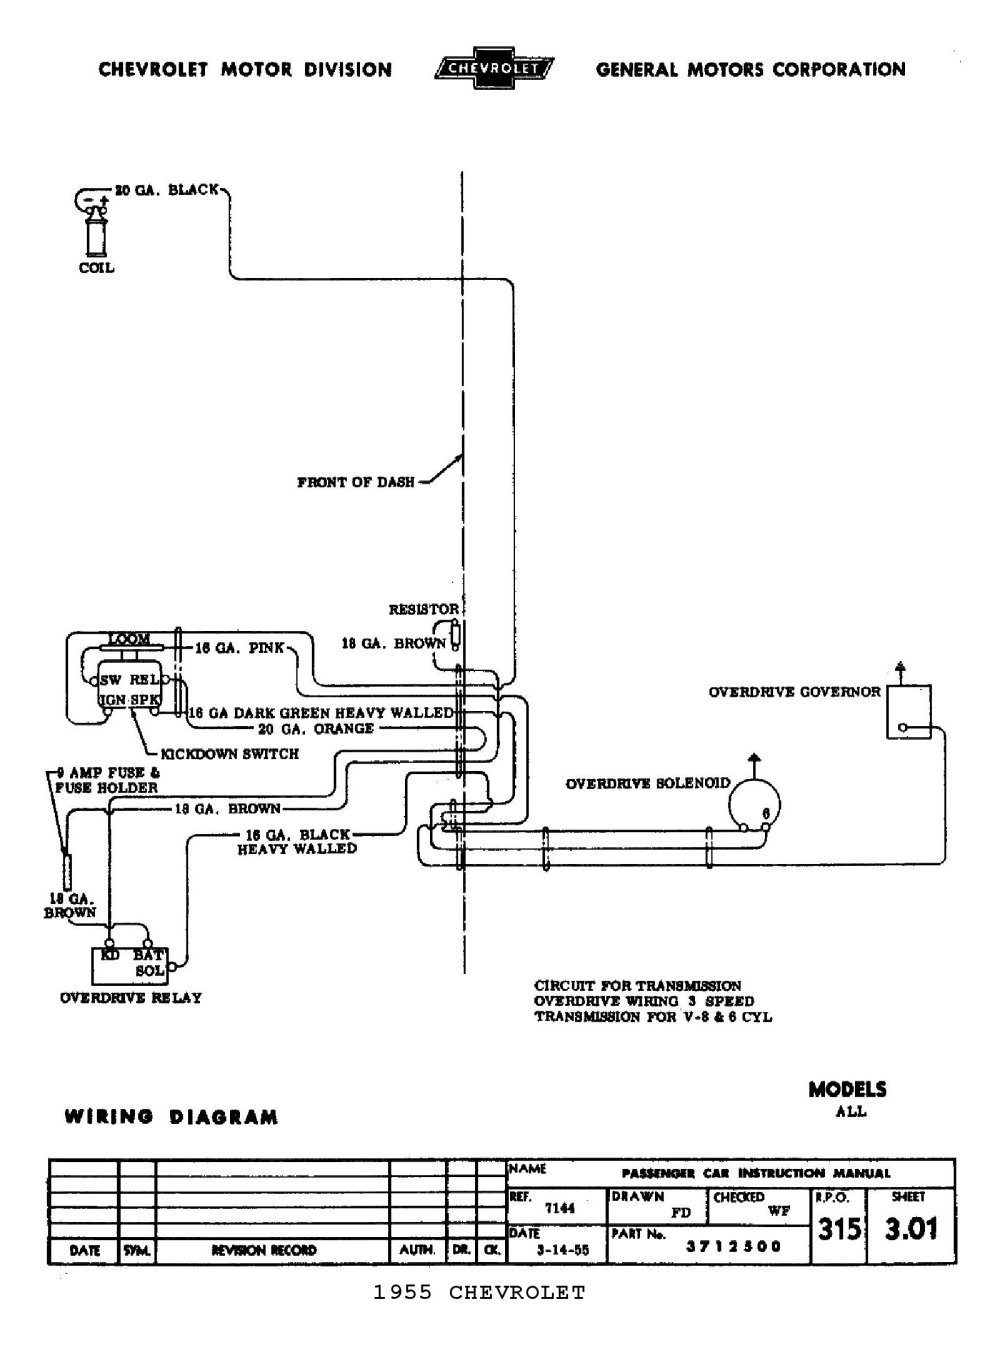 medium resolution of 1955 chevy overdrive wiring diagram wiring diagram schematics chevelle ignition wiring 55 chevy ignition wiring